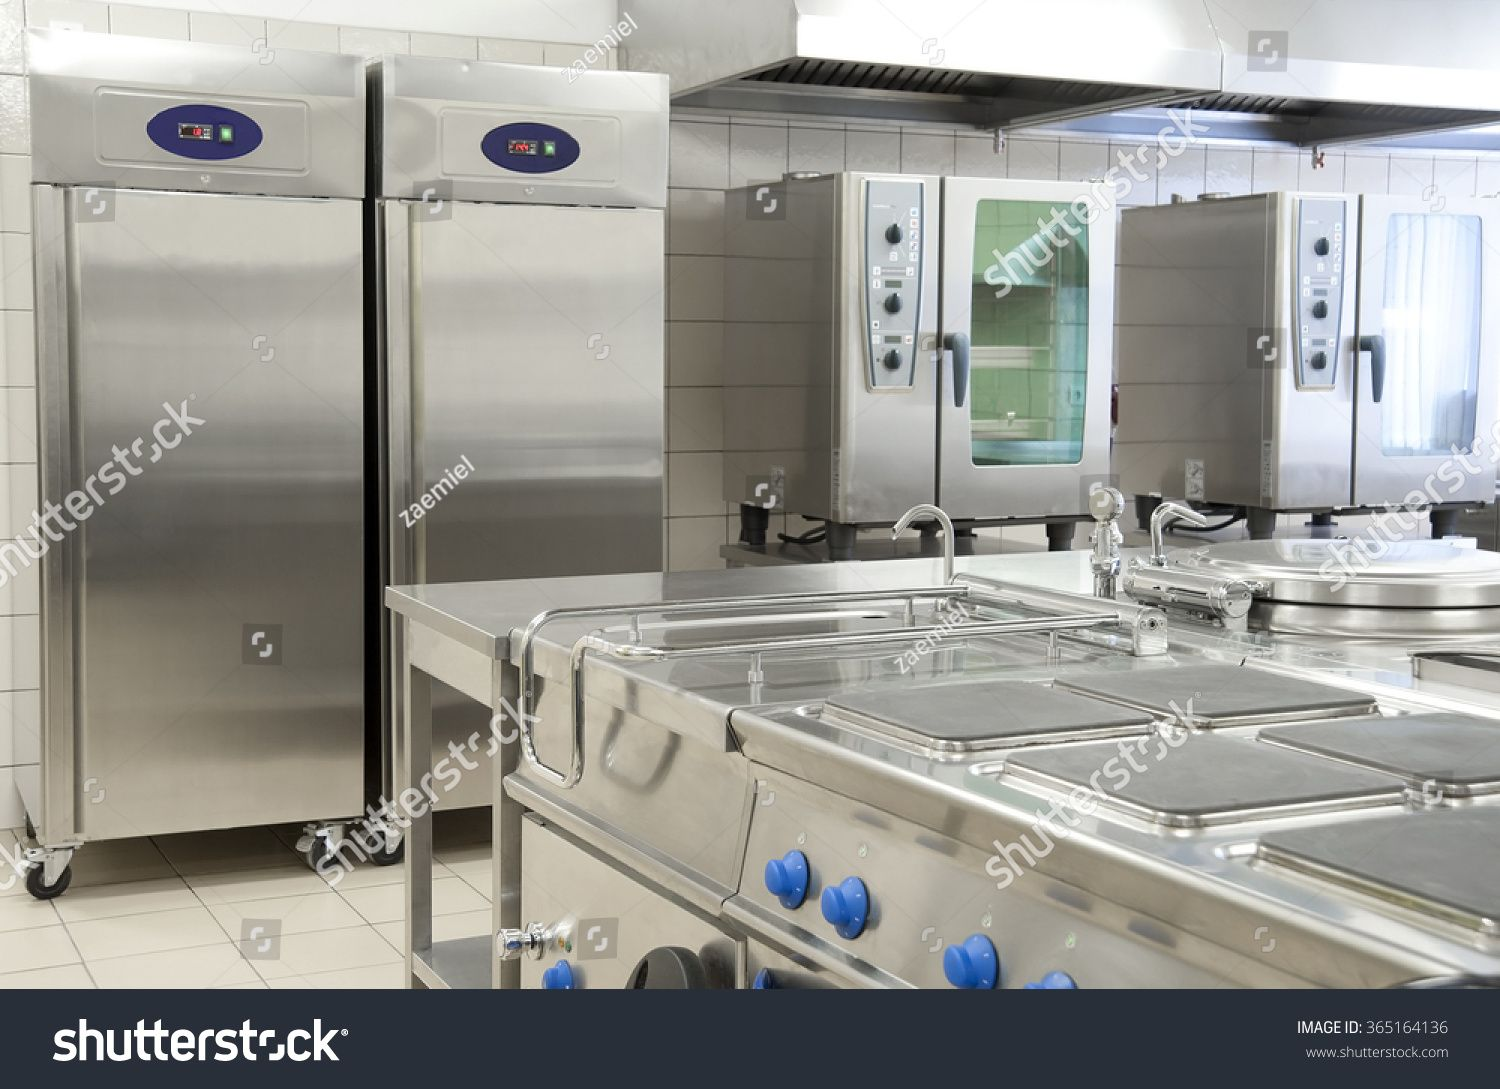 Empty Restaurant Kitchen With Professional Equipment Royalty Free Image Photo In 2020 Restaurant Kitchen Commercial Kitchen Restaurant Kitchen Equipment